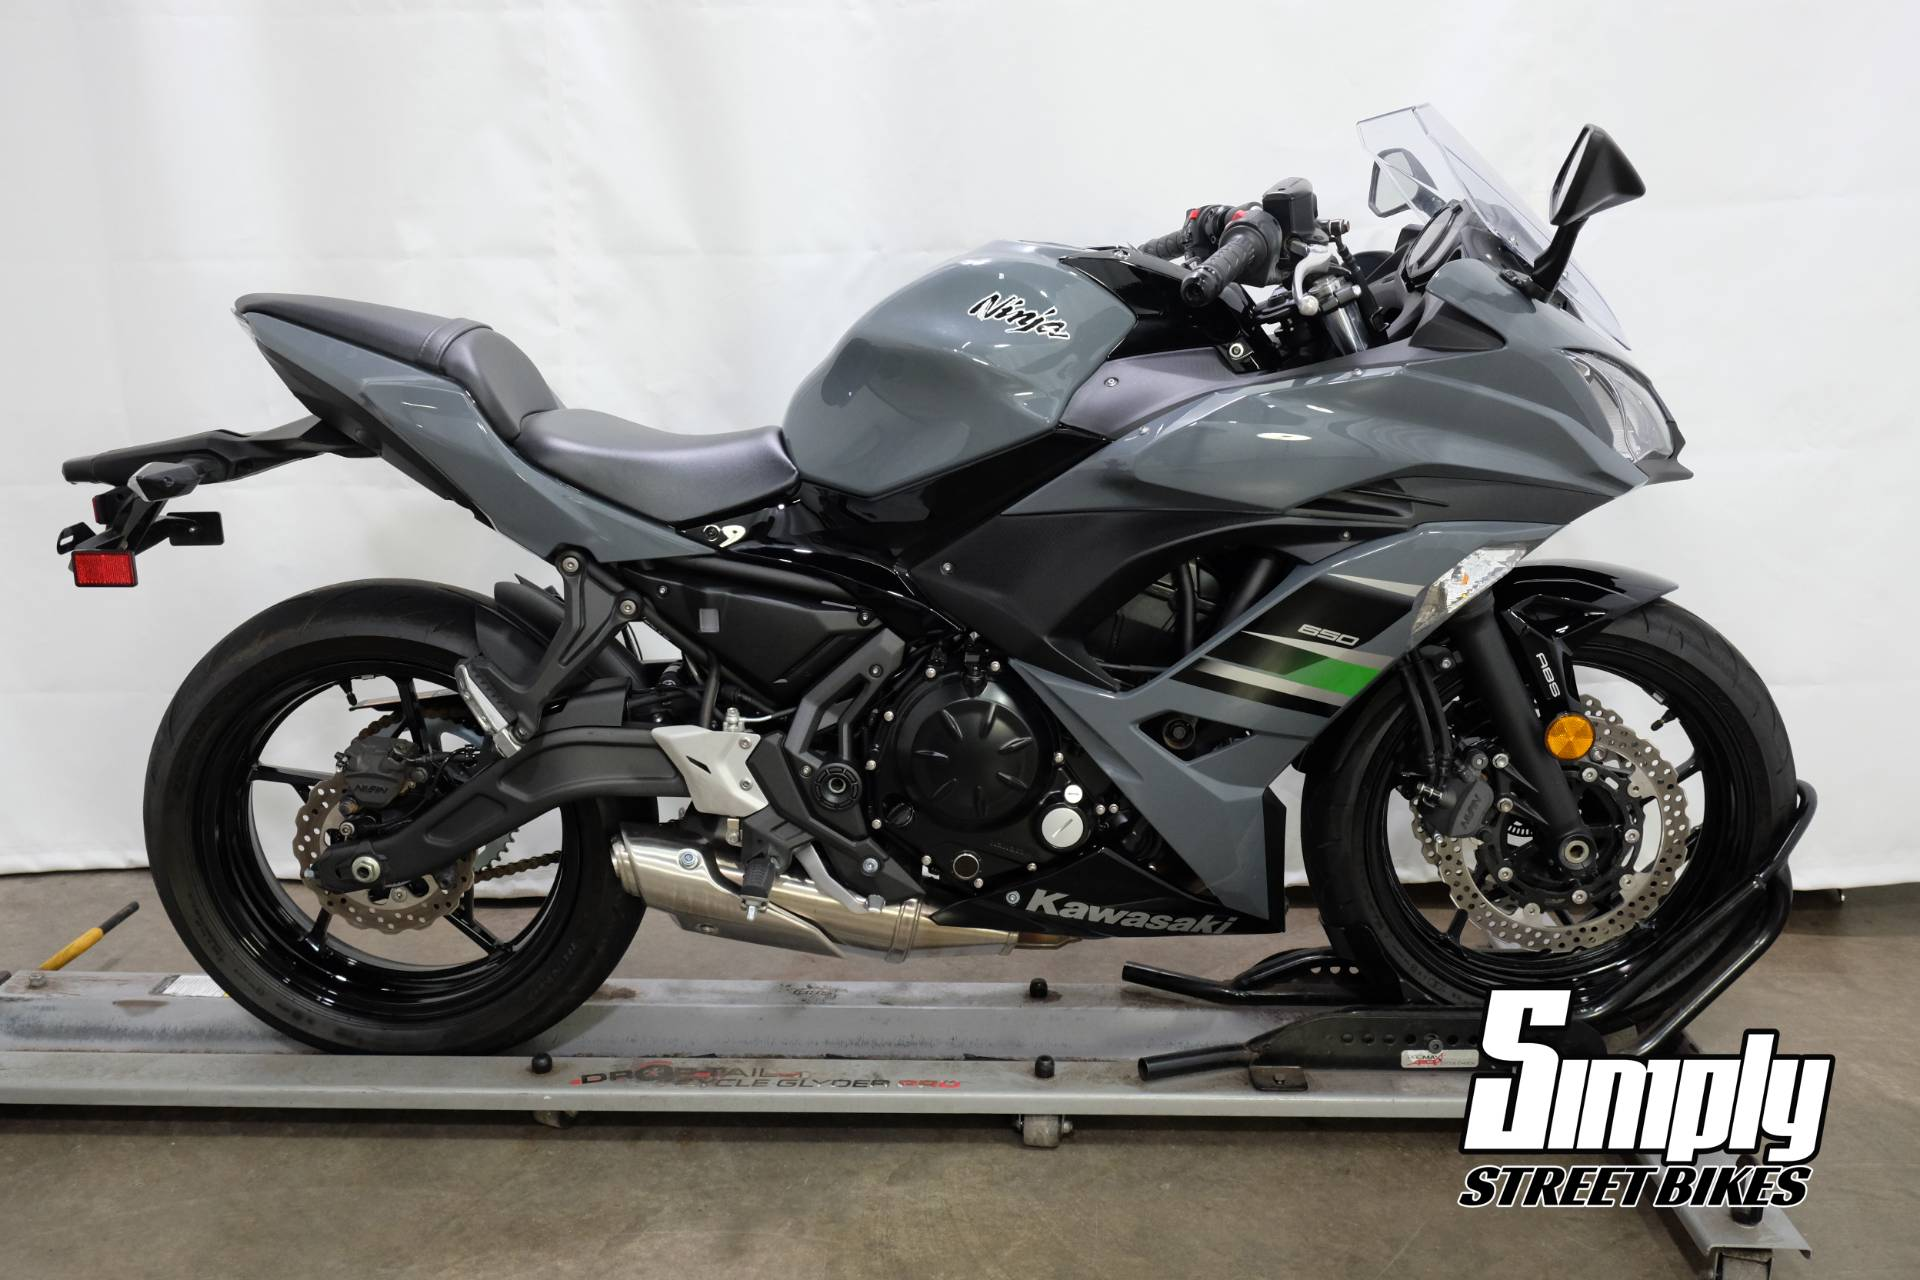 2018 Kawasaki Ninja 650 ABS in Eden Prairie, Minnesota - Photo 1